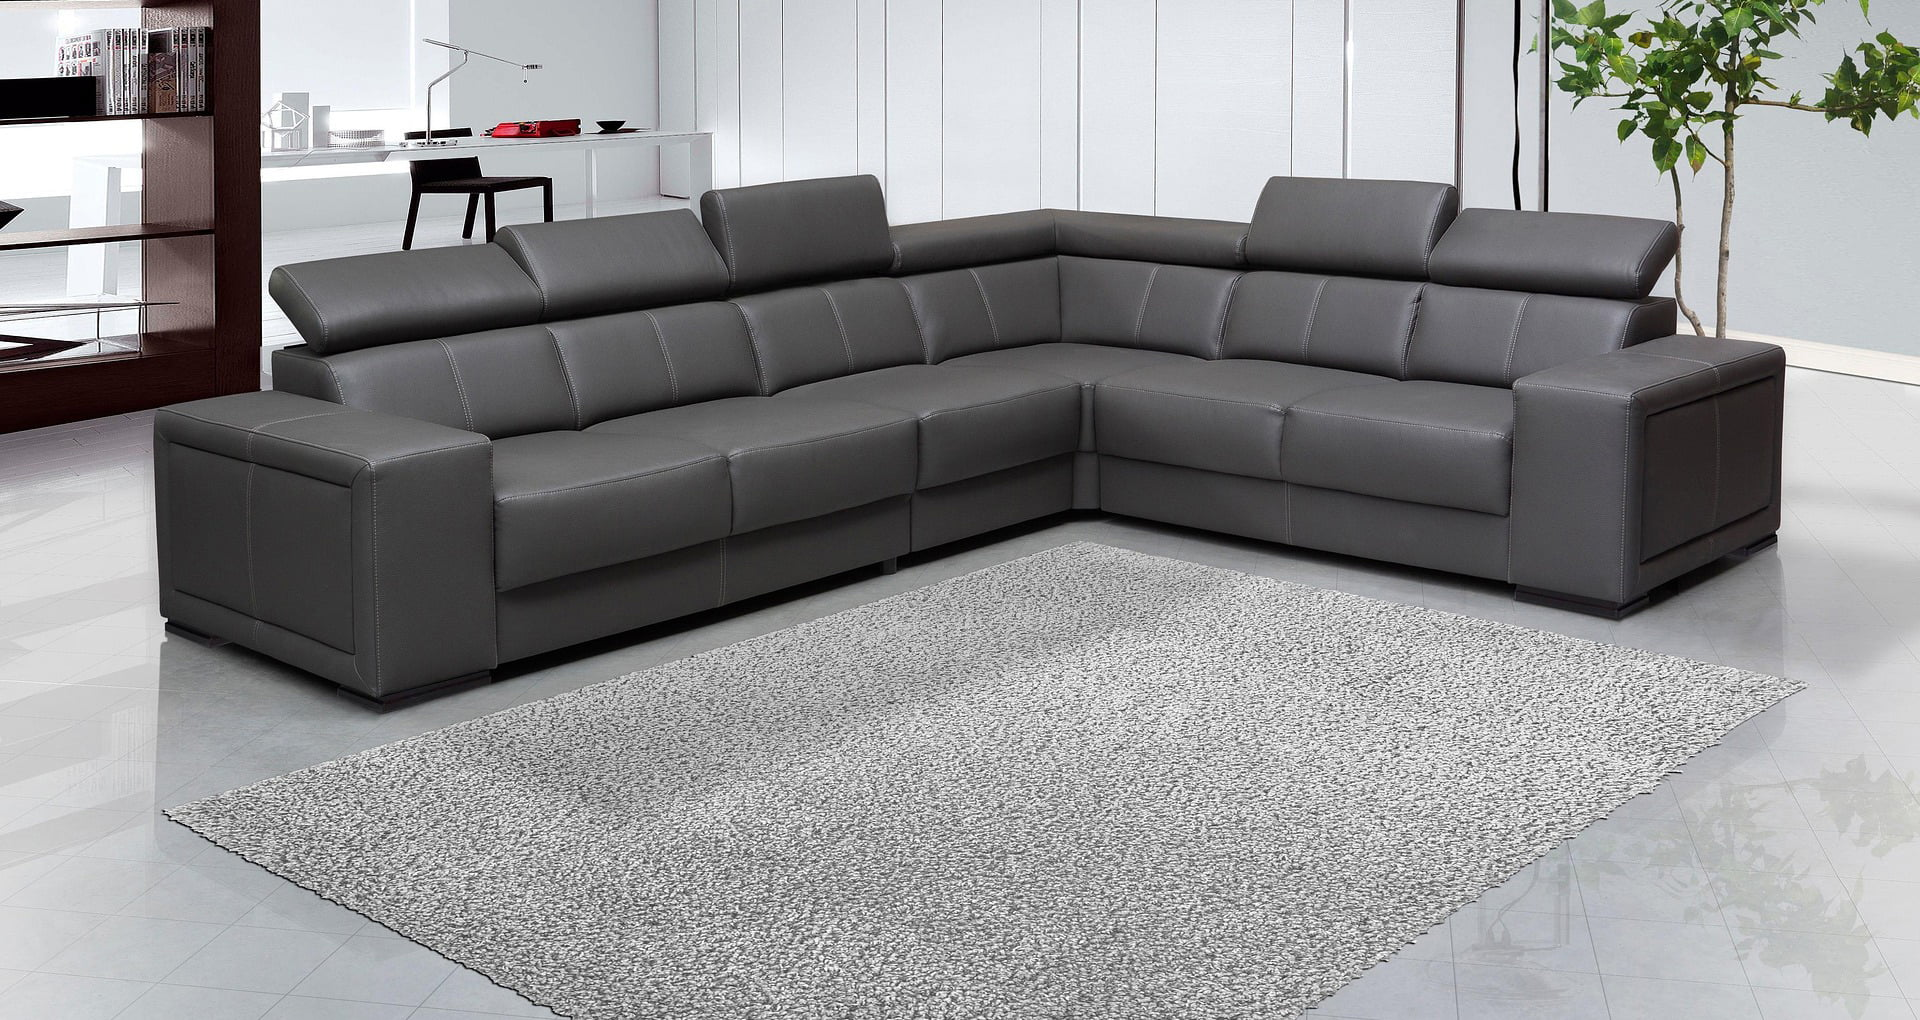 rid cleaner steam in sofa set couches for tips expert get gallery of stains cleaning melbourne couch upholstery and